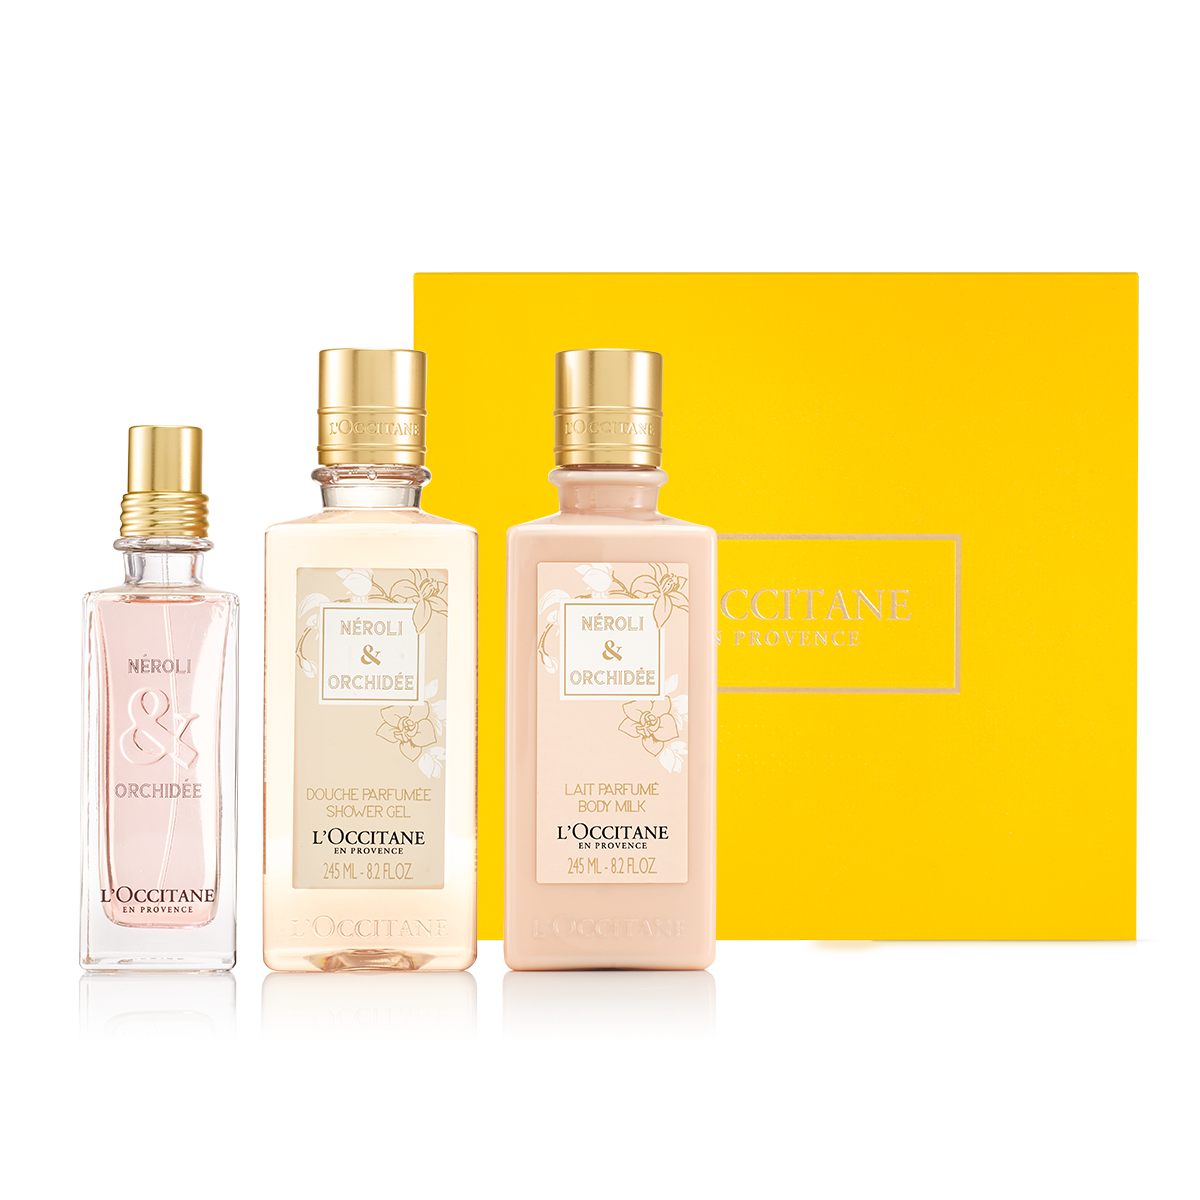 Néroli & Orchidée Fragrance Collection - L'Occitane